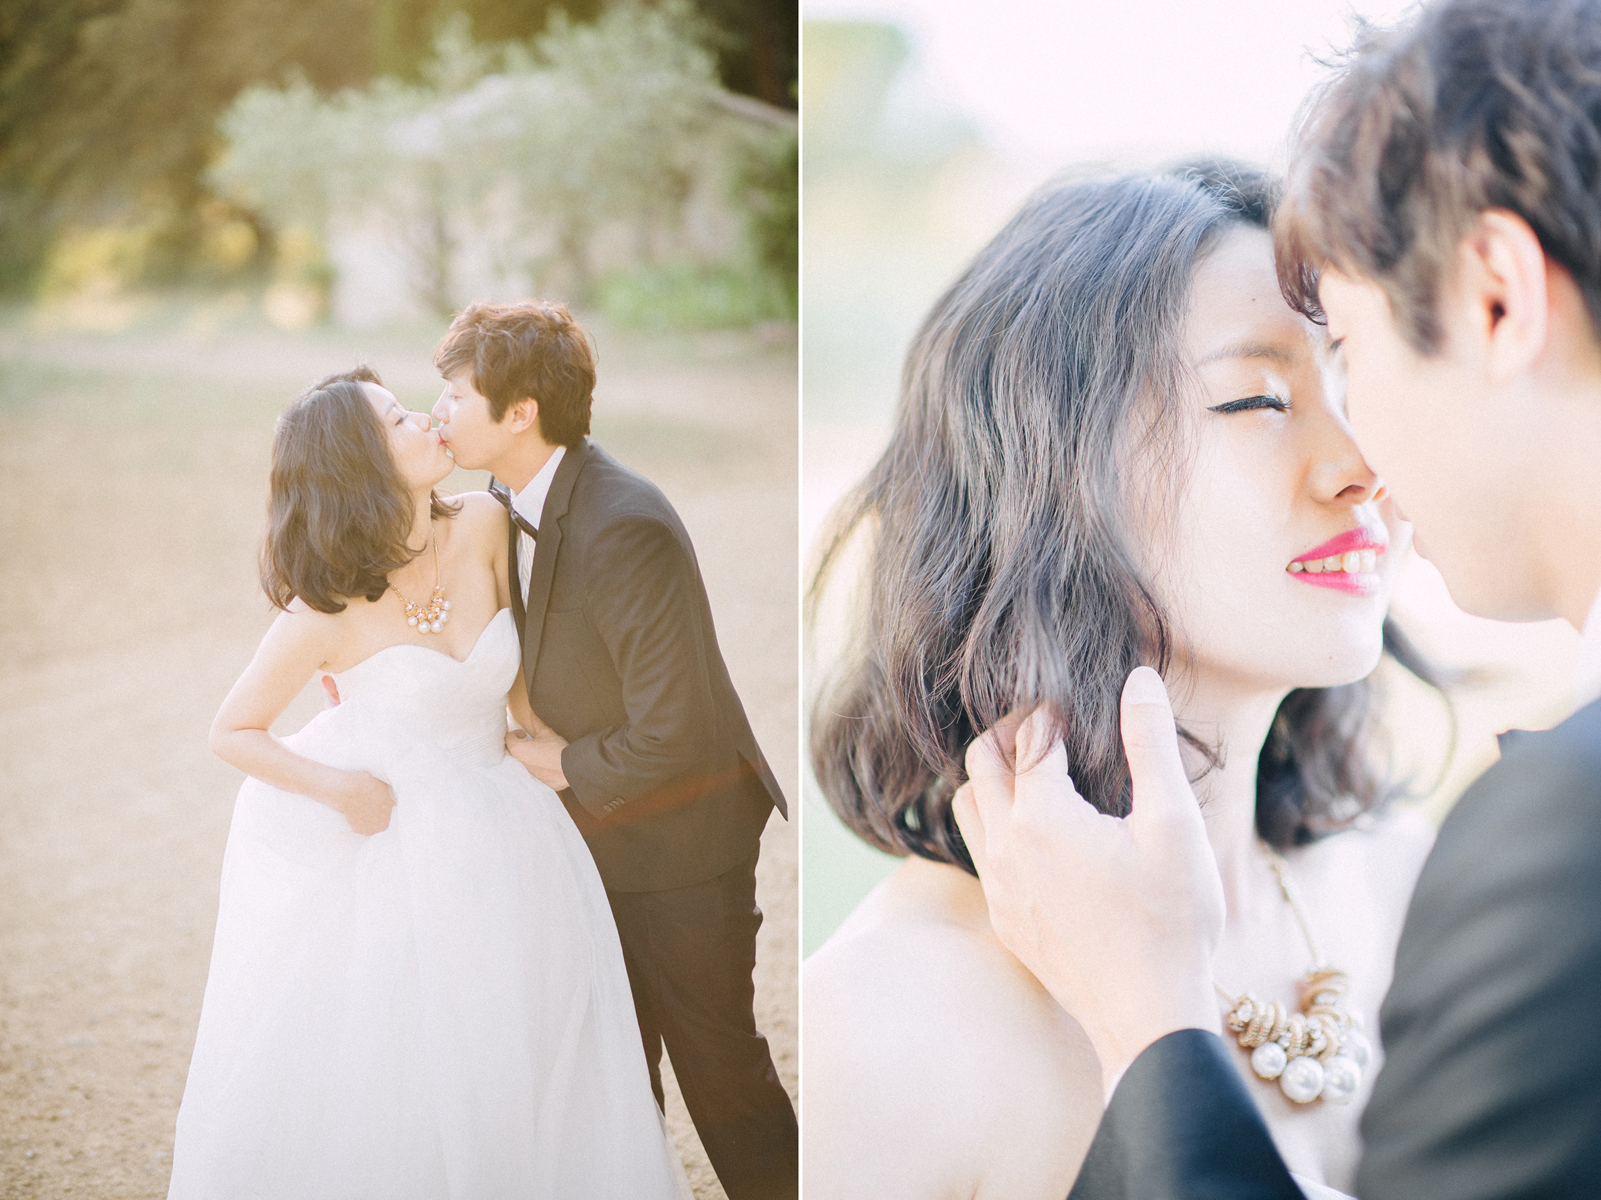 Boheme-Moon-Wedding-Photography-Taiwan-Pre-Wedding-Provence_19.jpg